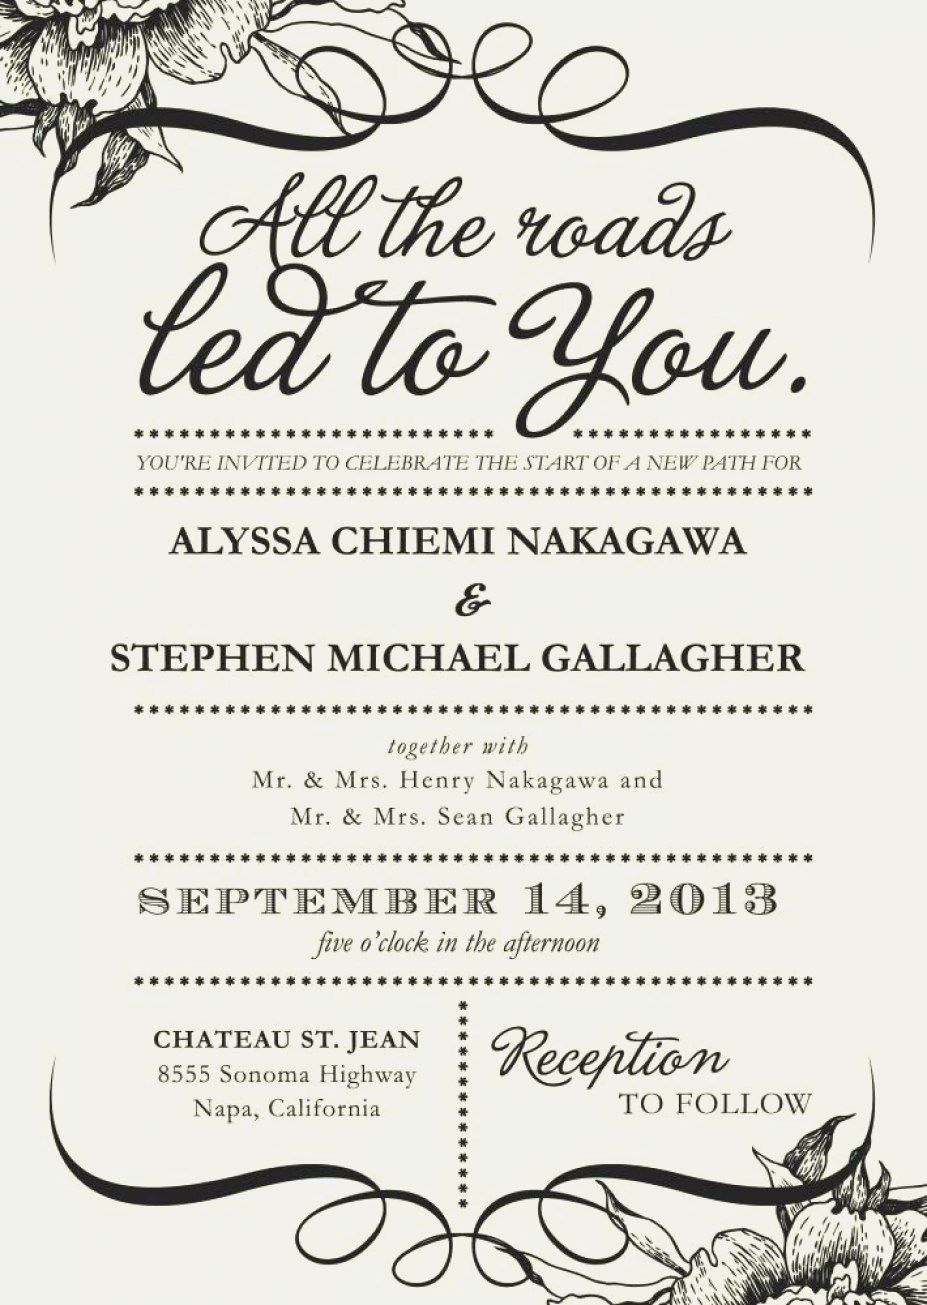 35 Creative Image Of What To Say On A Wedding Invitation